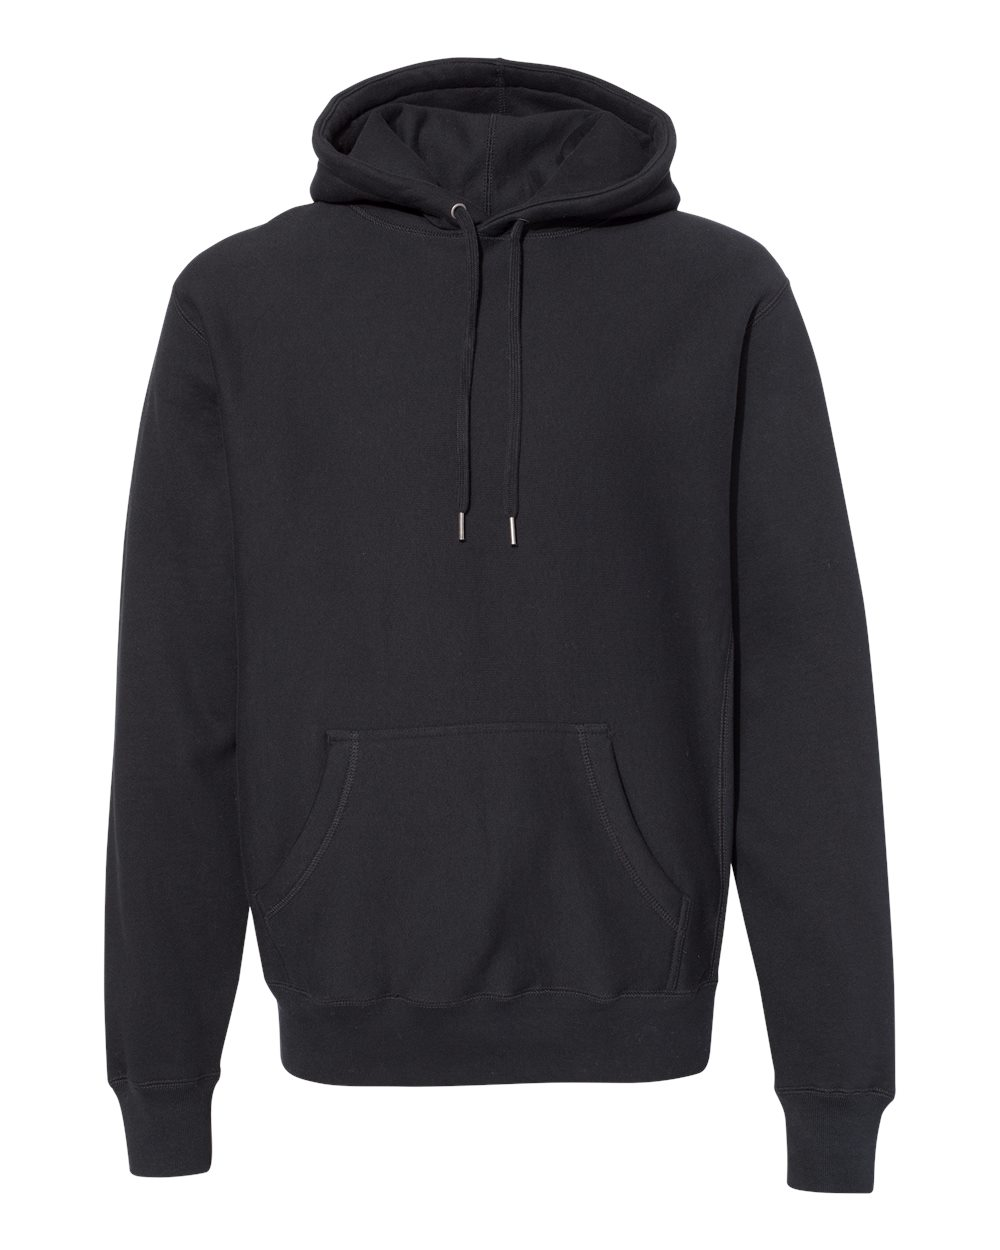 Independent-Trading-Co-Mens-Premium-Heavyweight-Cross-Grain-Hoodie-IND5000P thumbnail 9